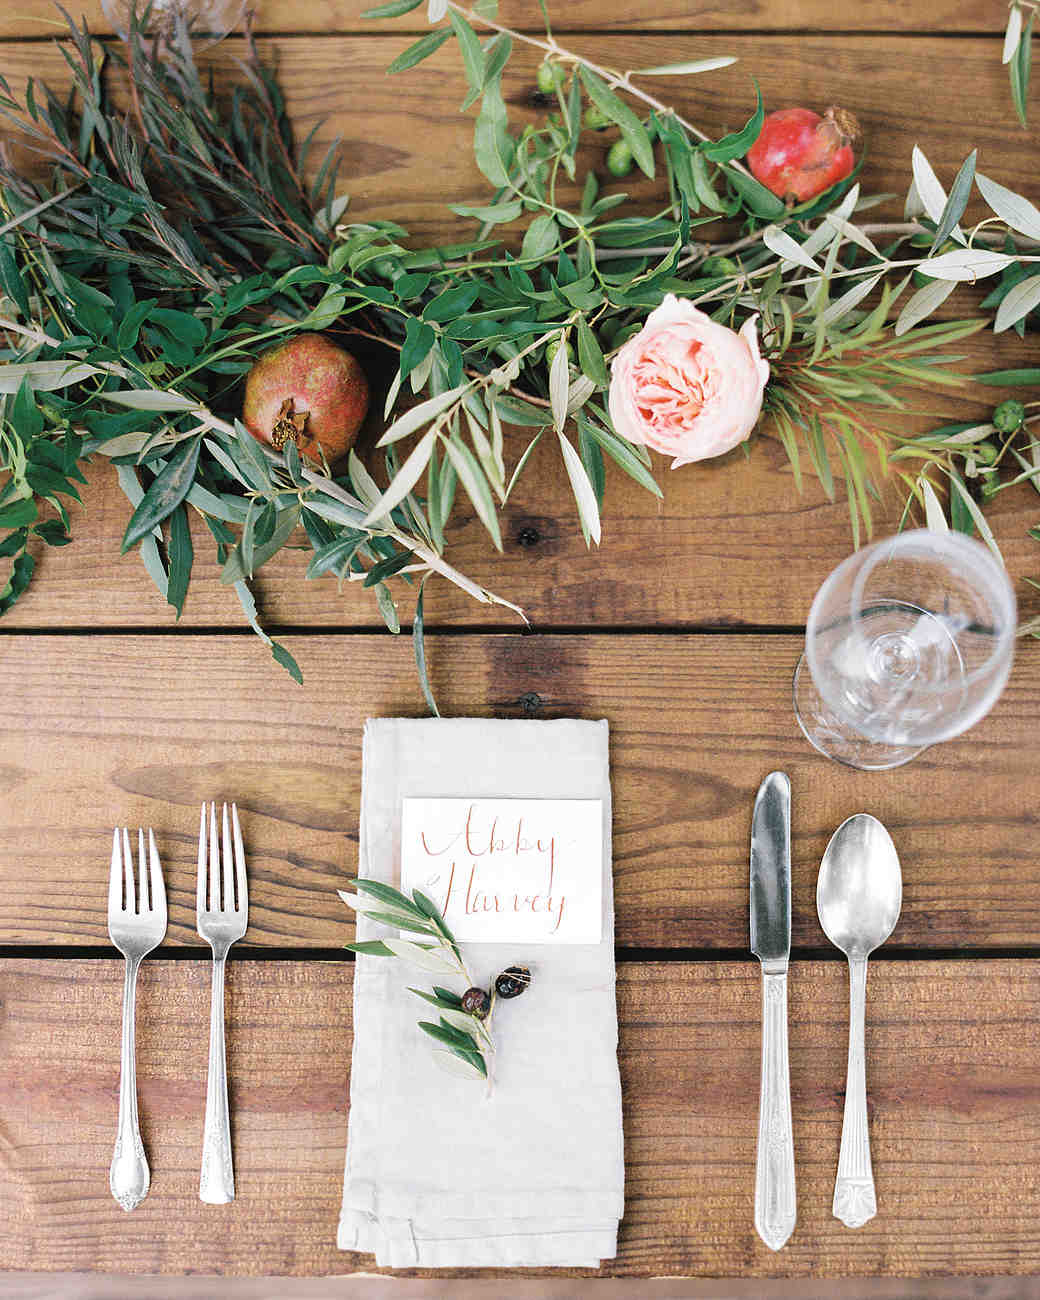 Wood Table with Minimalist Table Setting and Green Foliage